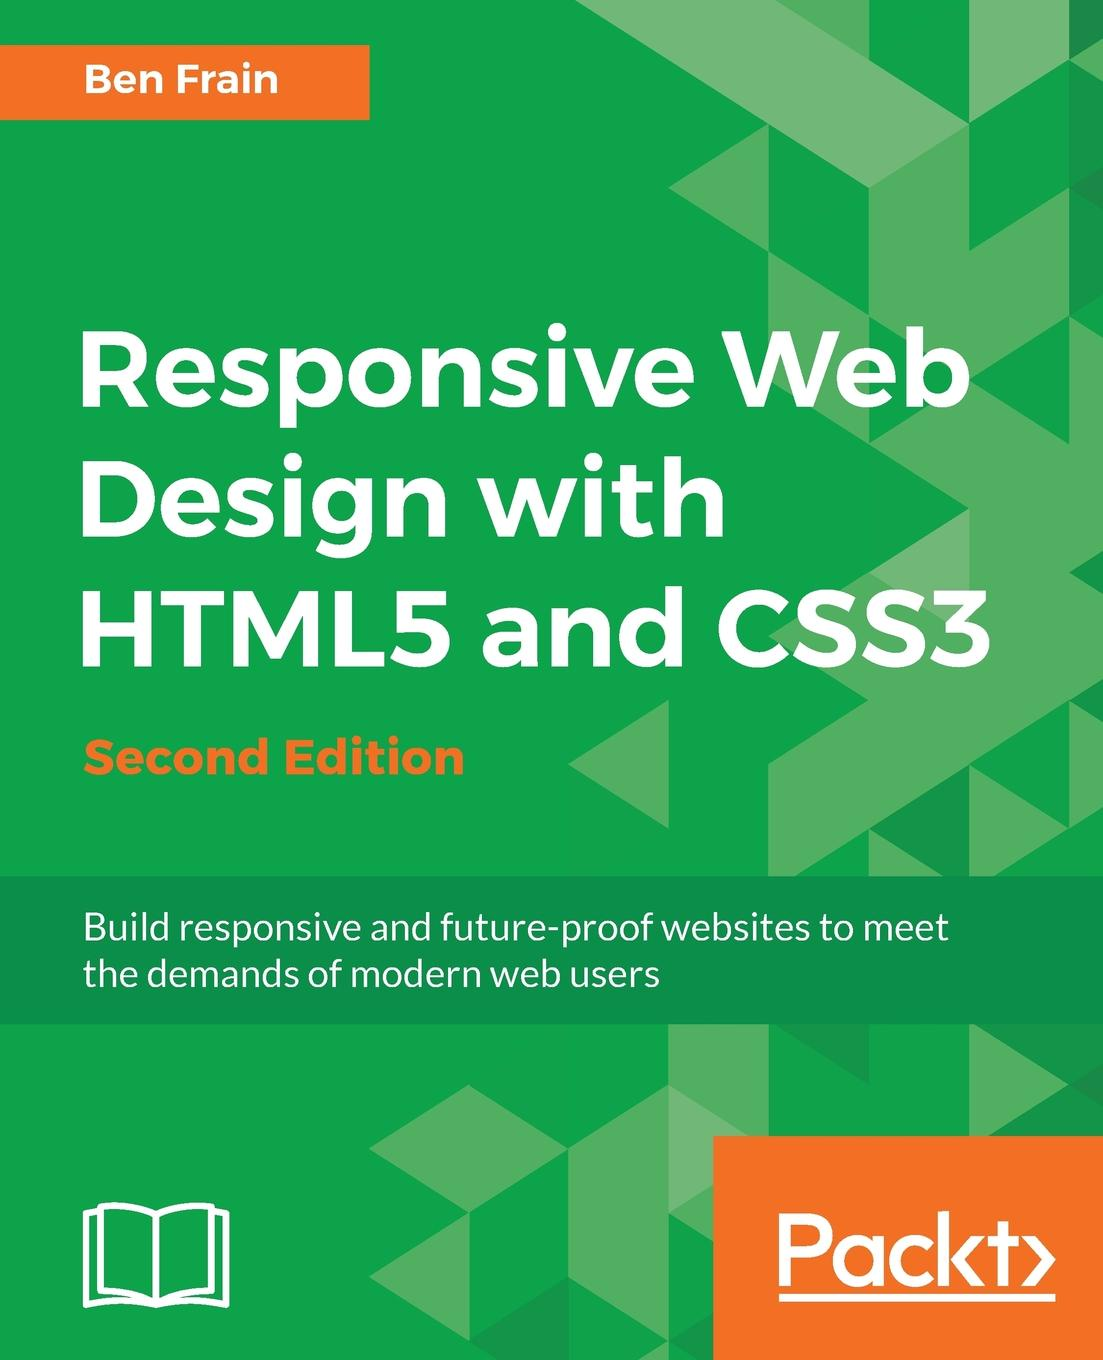 Ben Frain Responsive Web Design with HTML5 and CSS3 - Second Edition